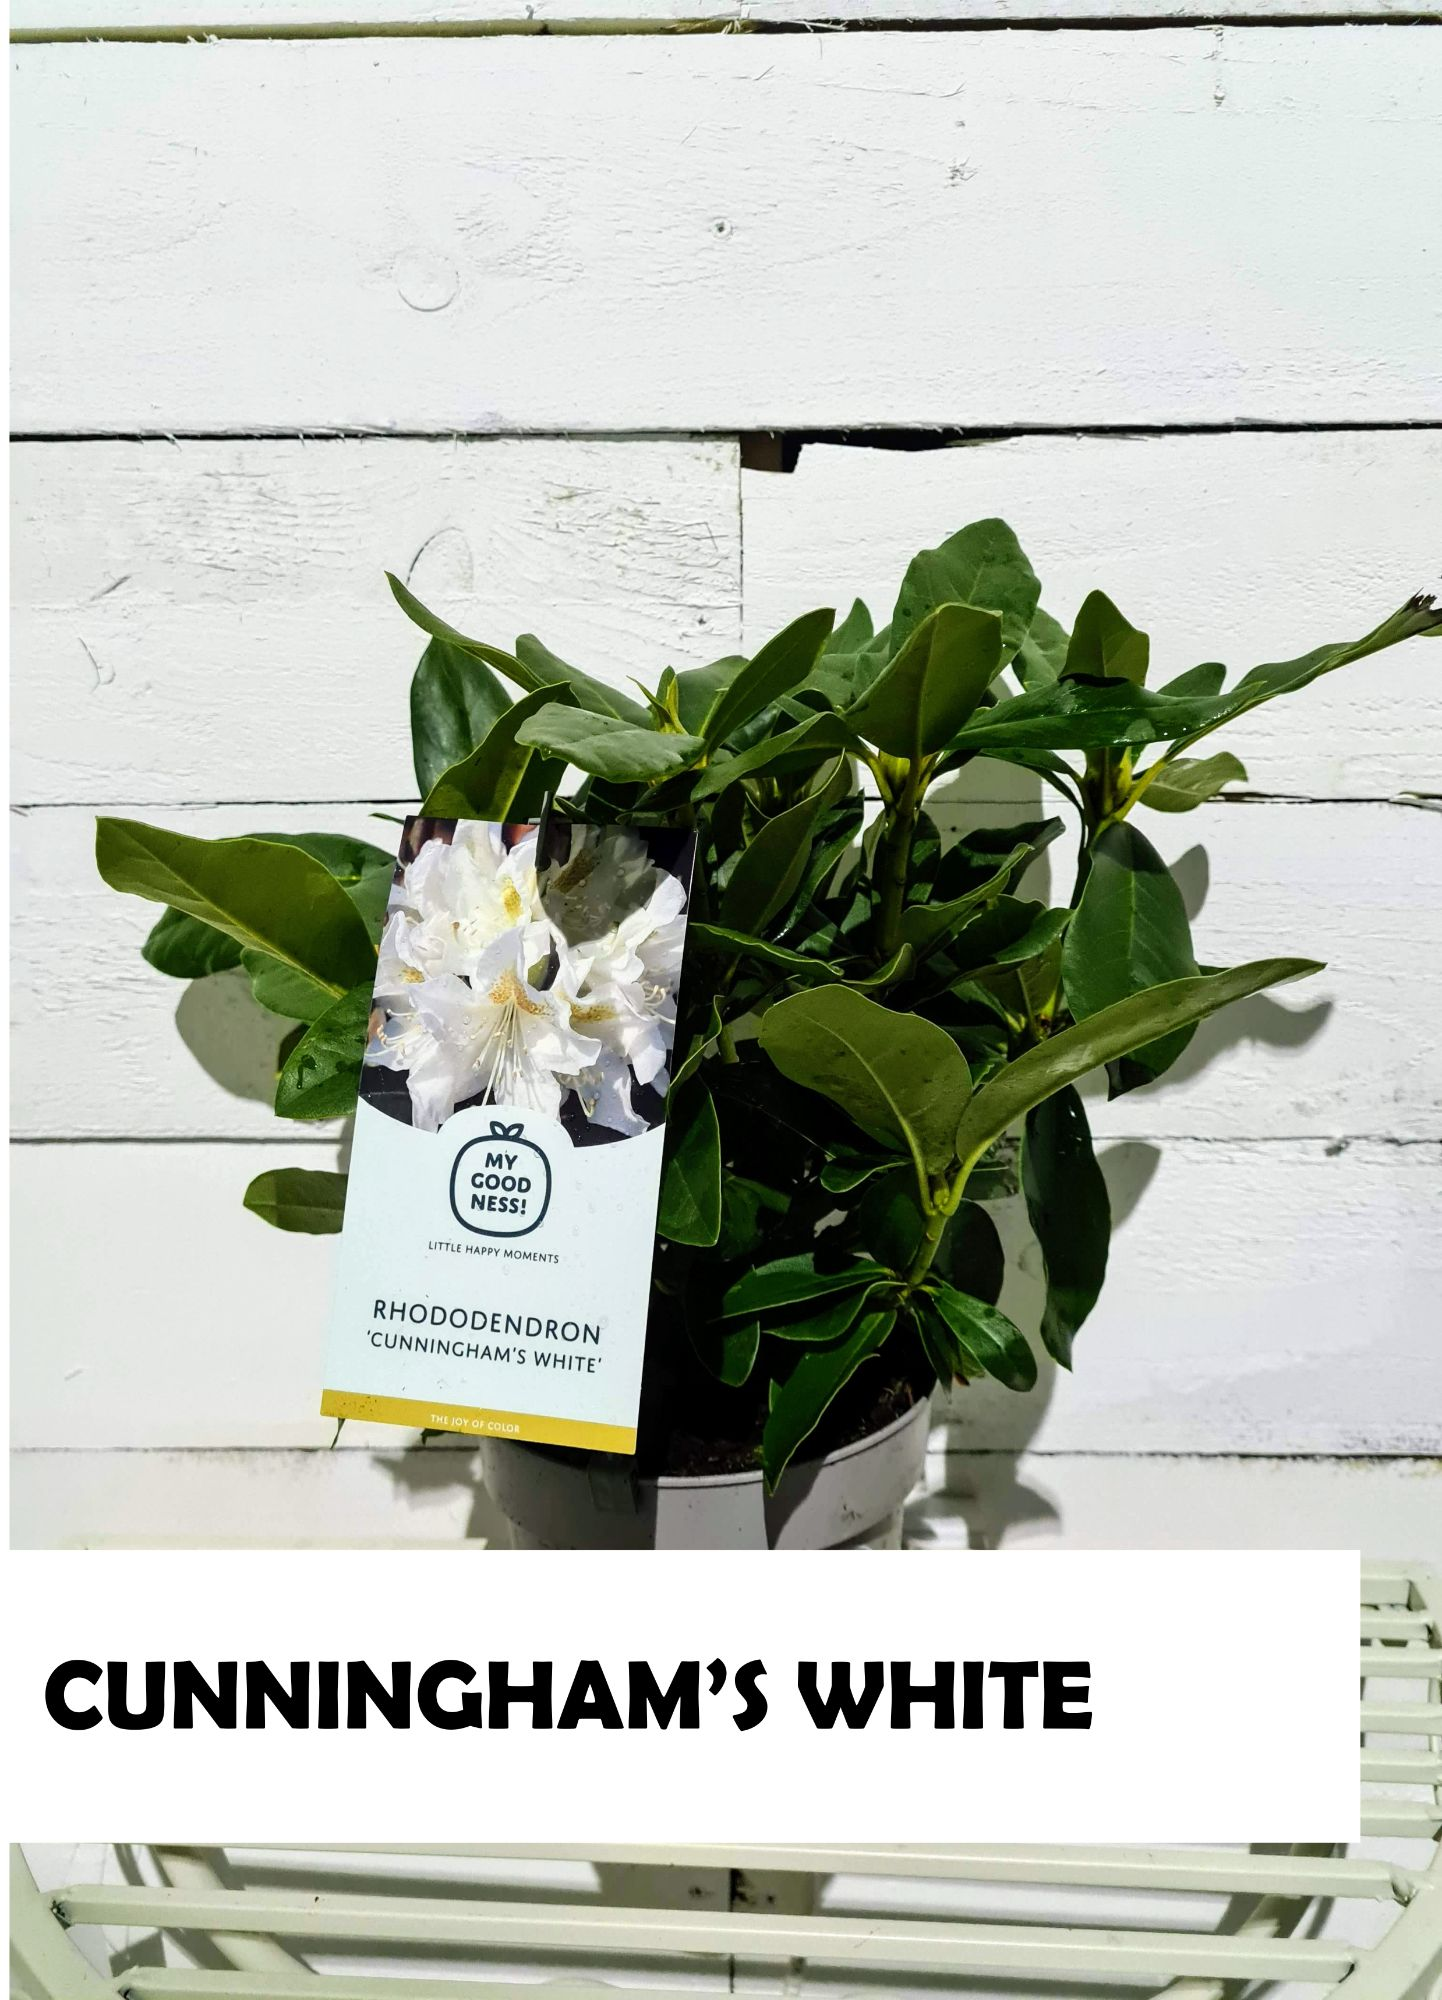 RHODODENDRON_MIX_CUNNINGHAMS_WHITE